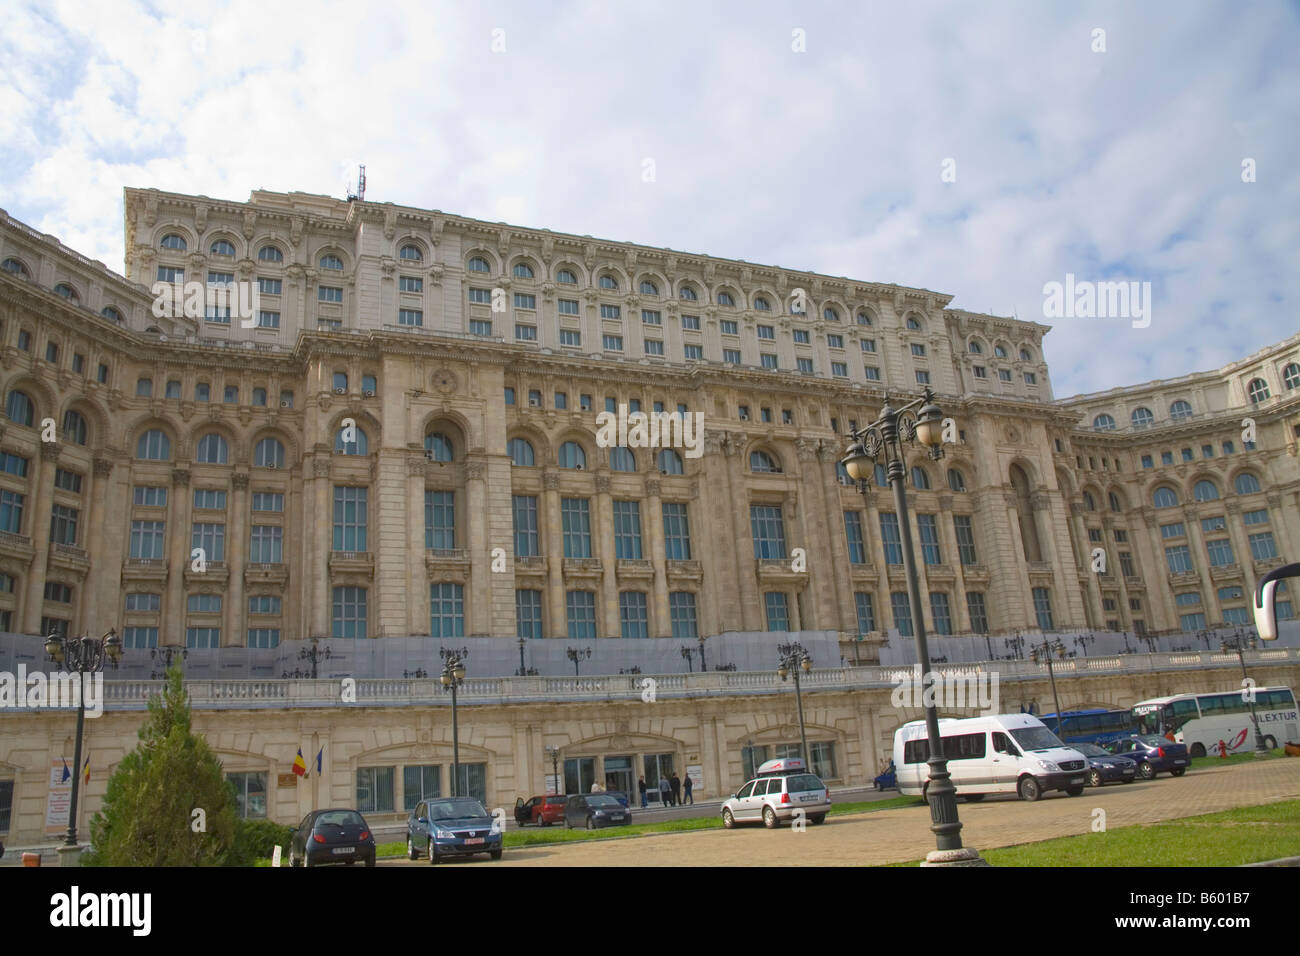 Bucharest Romania Europe The Casa Poporului House of the People started by Nicholae Ceausescu in 1984 most expensive Stock Photo